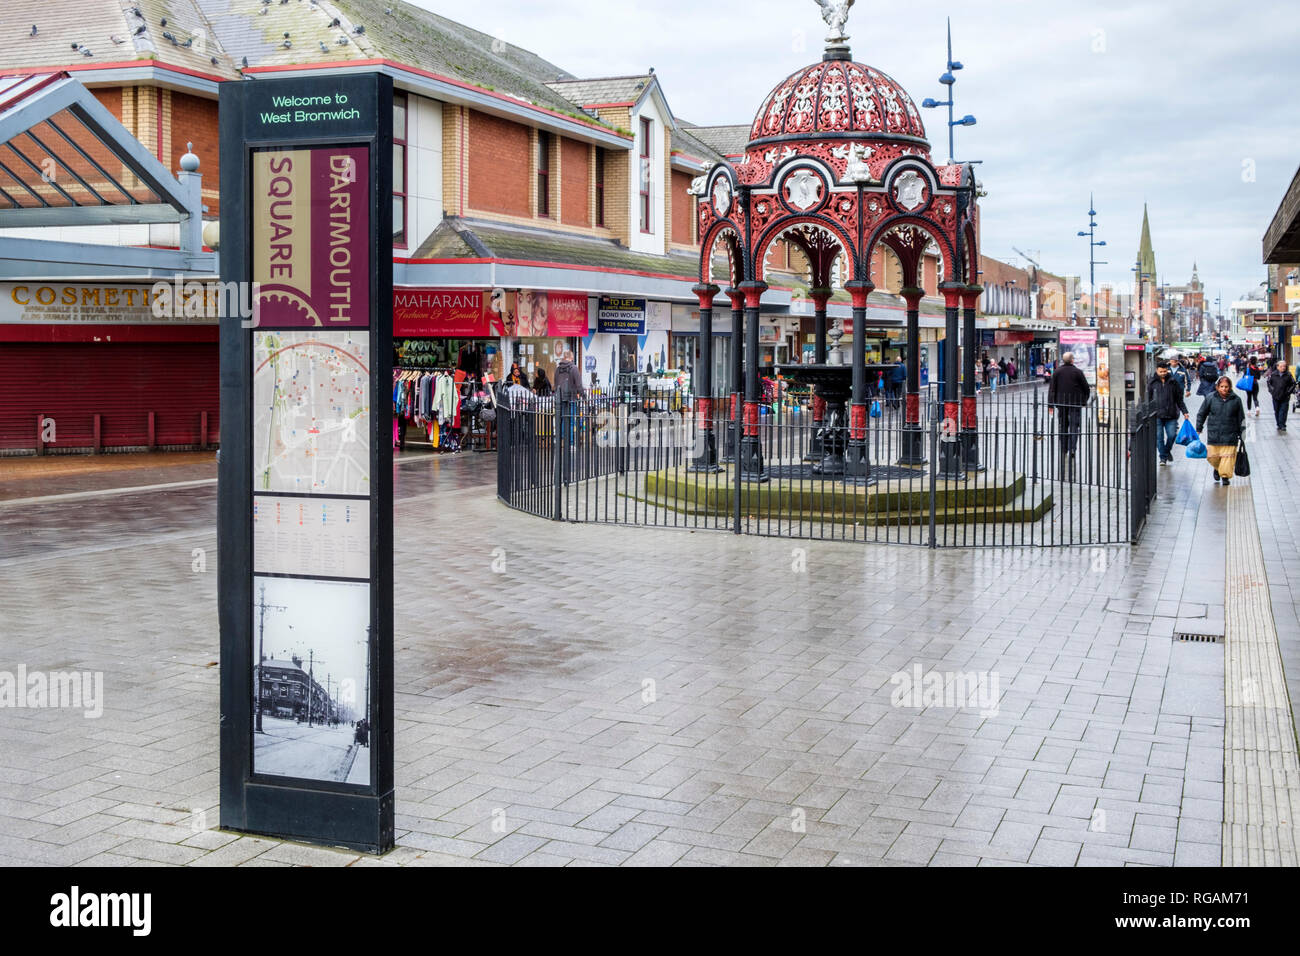 West Bromwich High Resolution Stock Photography And Images Alamy